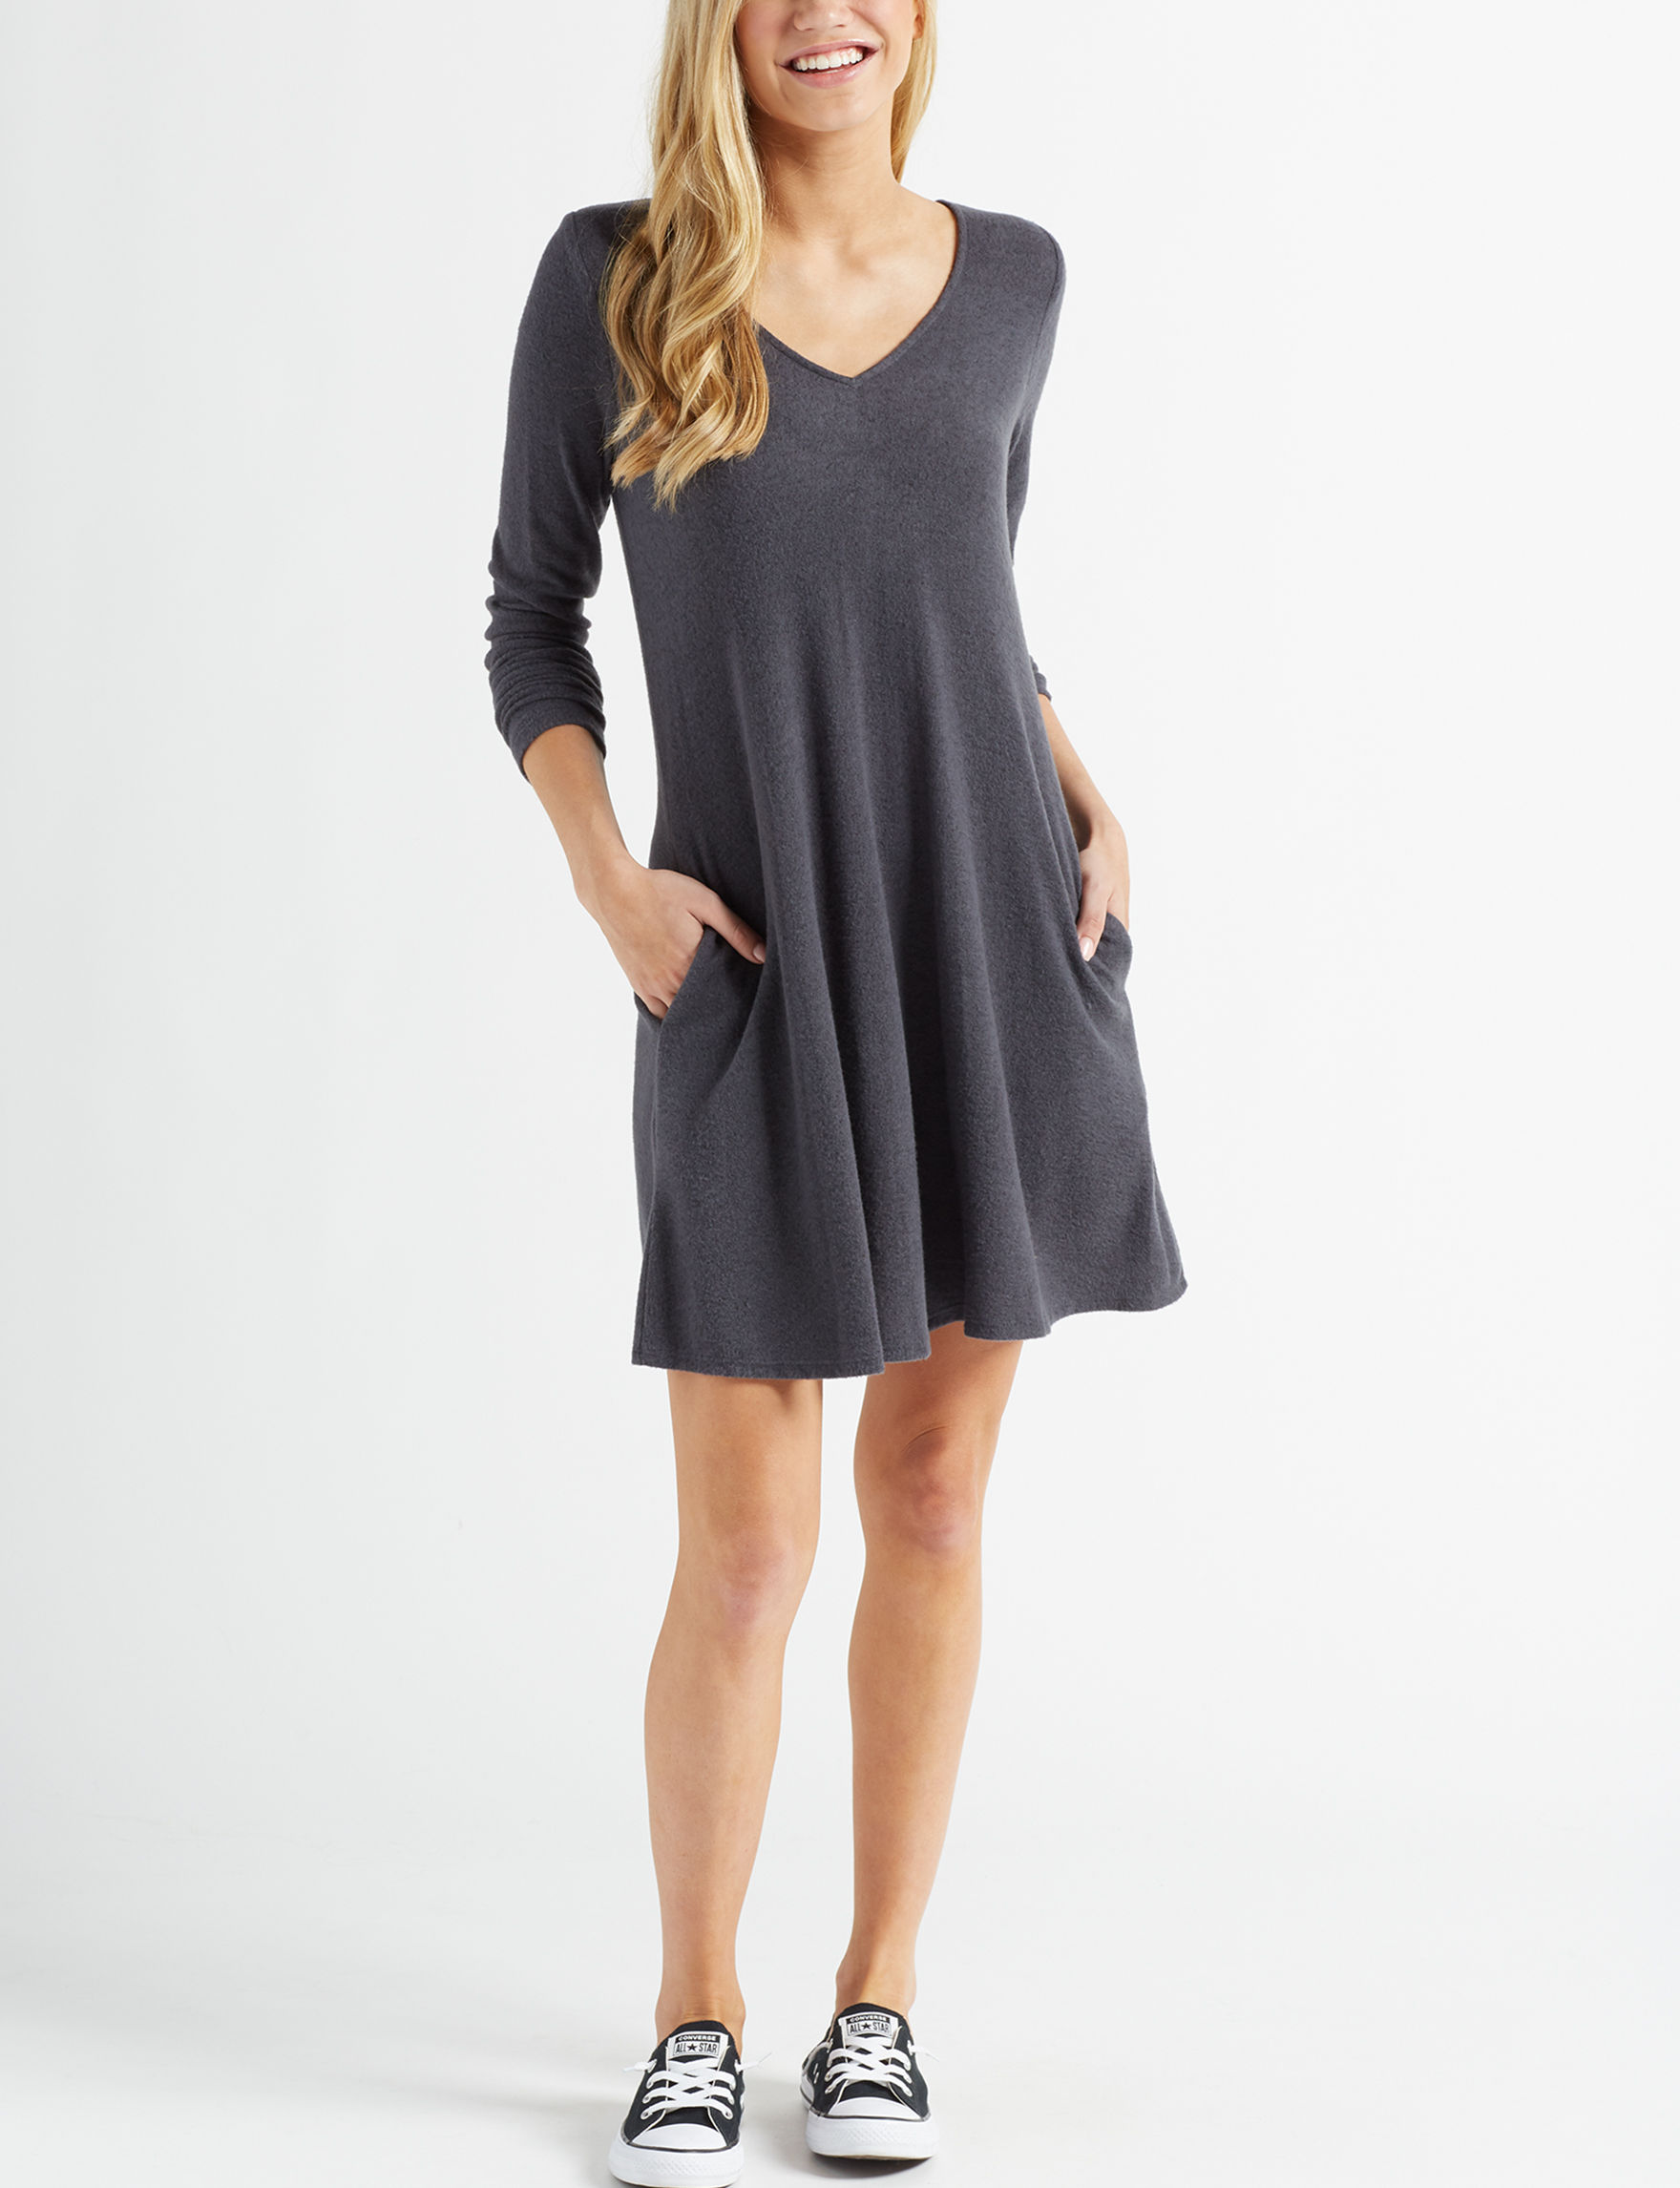 A. Byer Charcoal Everyday & Casual Shift Dresses